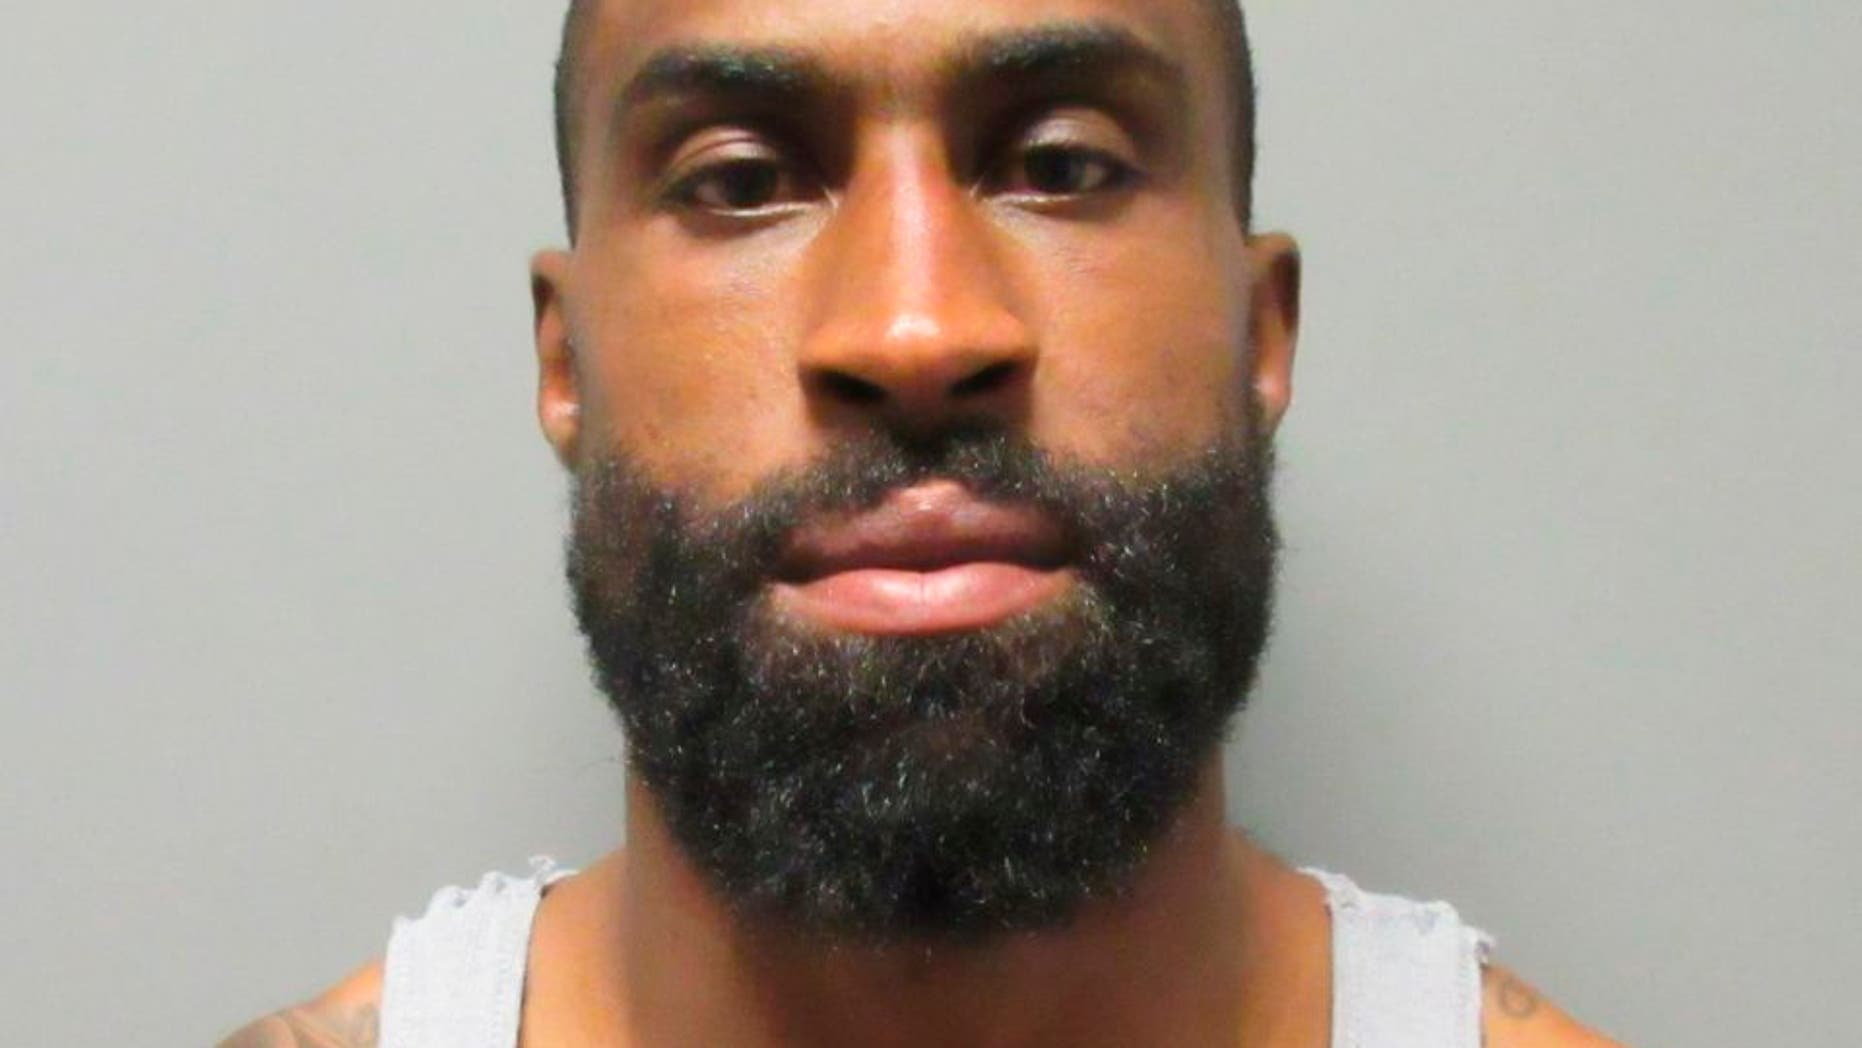 Brandon Browner was arrested in July for allegedly breaking into his ex-girlfriend's home in southern California and threatening to kill her.